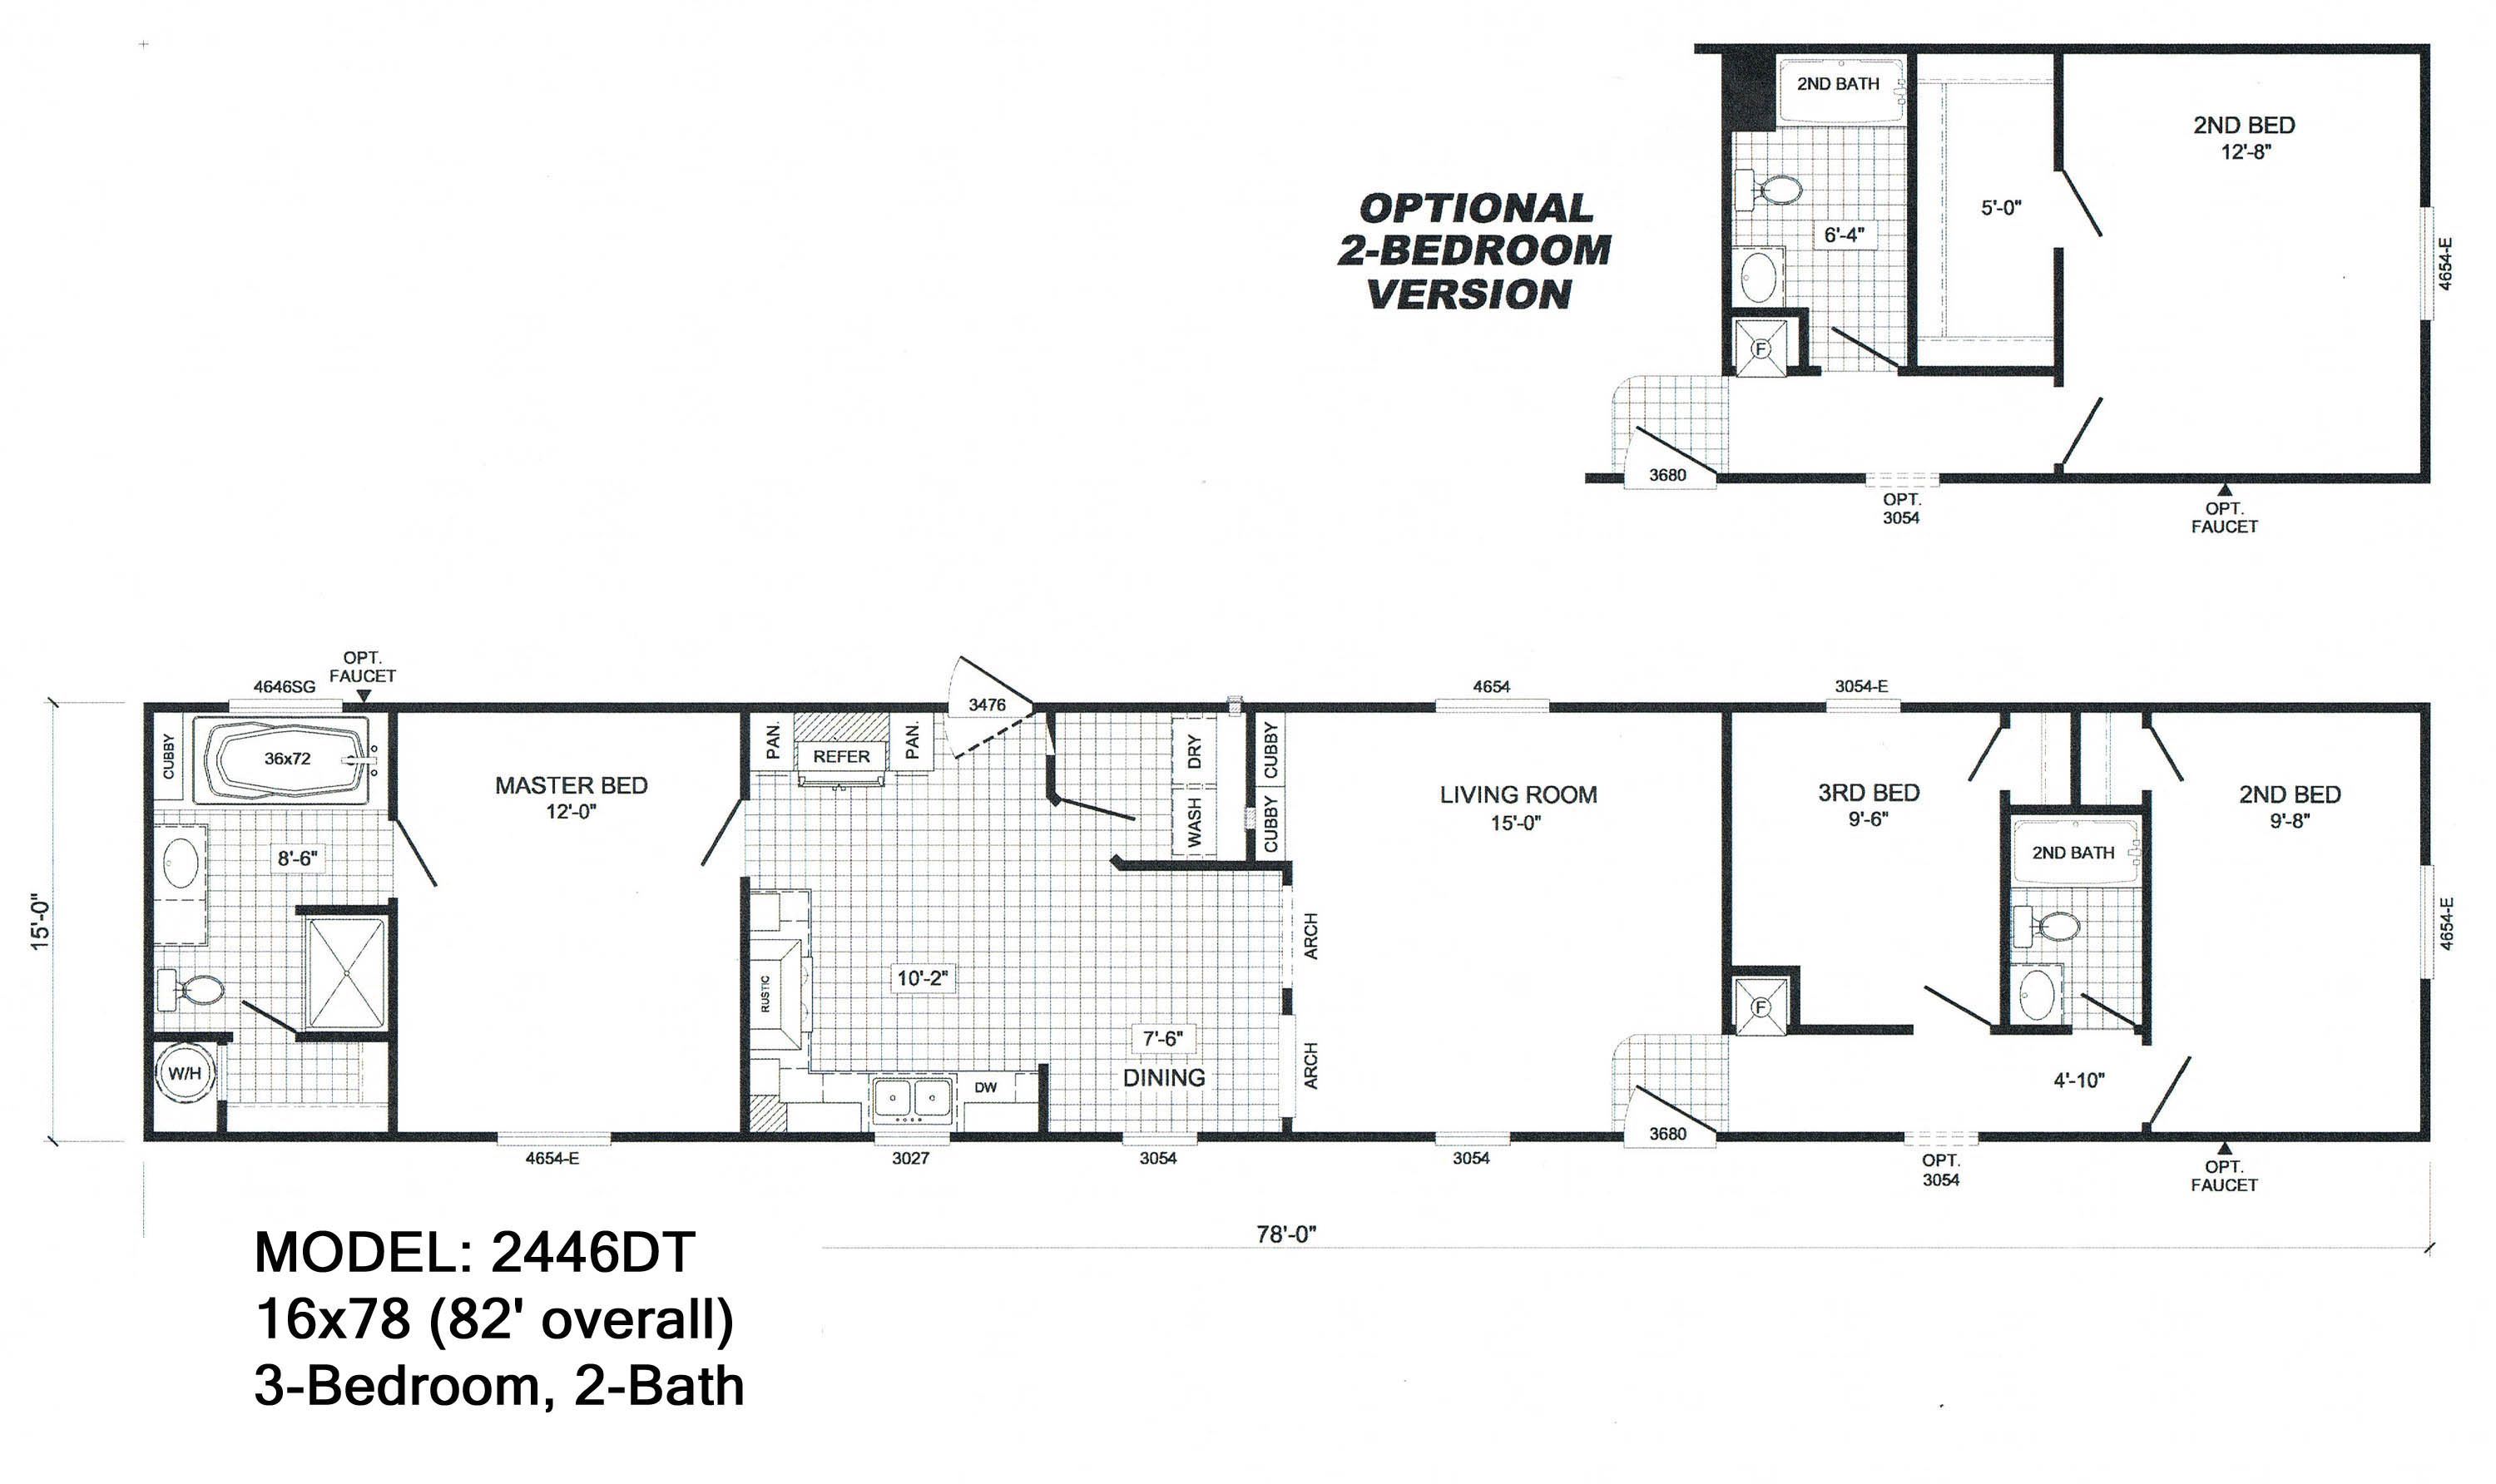 scotbilt mobile home floor plans singelwide 16 x 84 3 br 2ba [ 3000 x 1784 Pixel ]